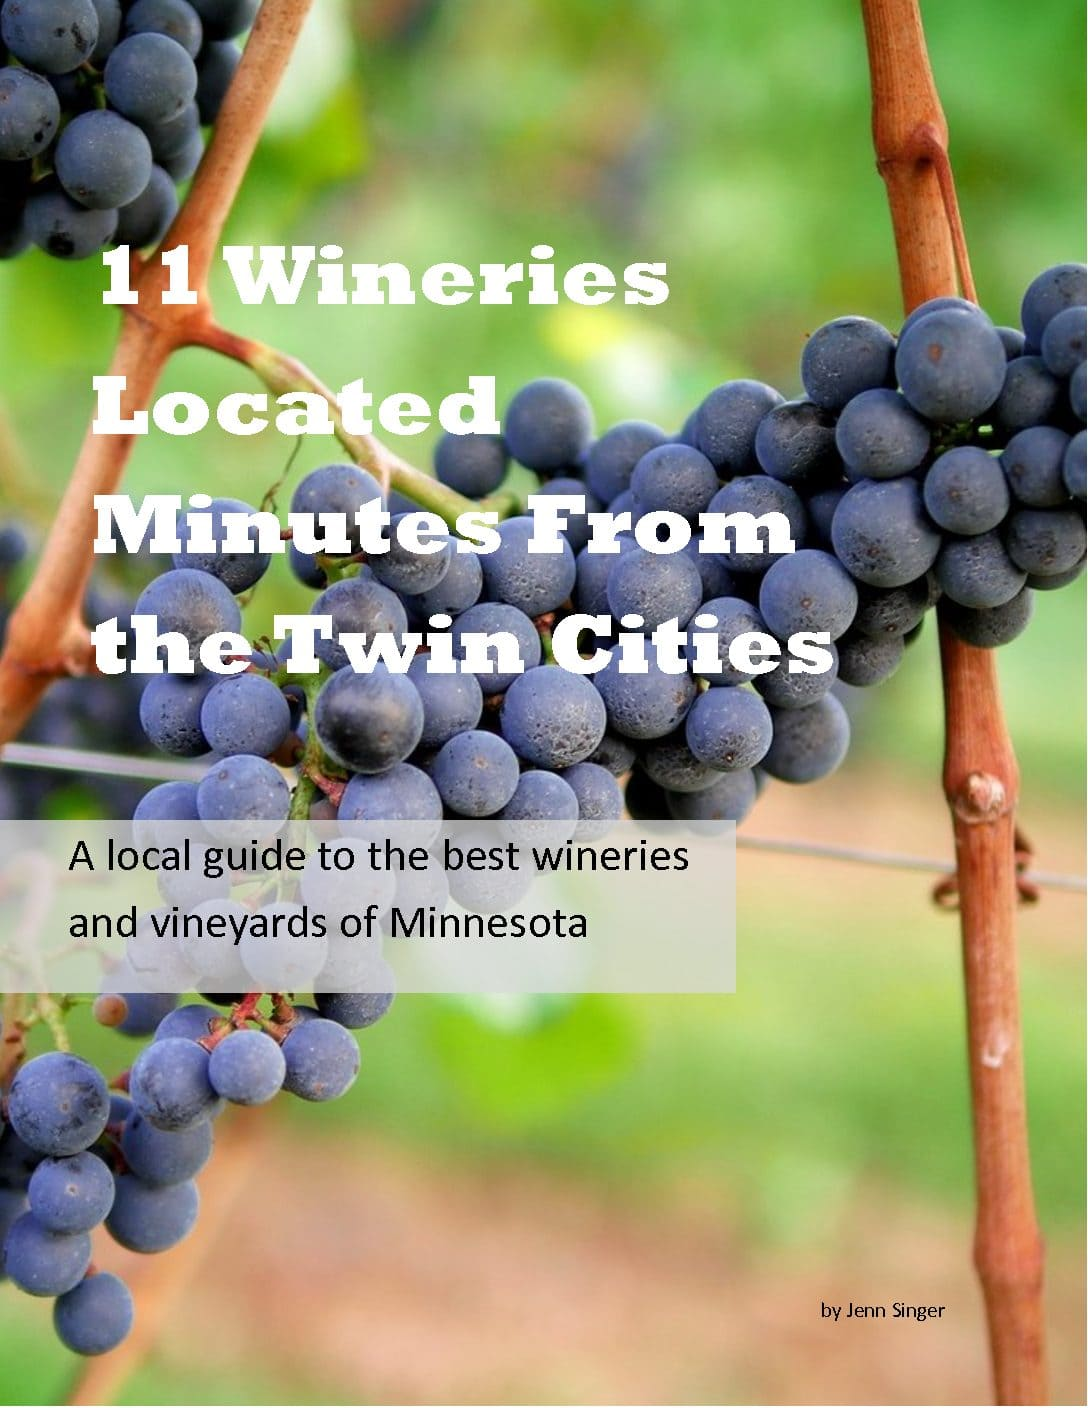 11 Wineries Located Minutes Form the Twin Cities